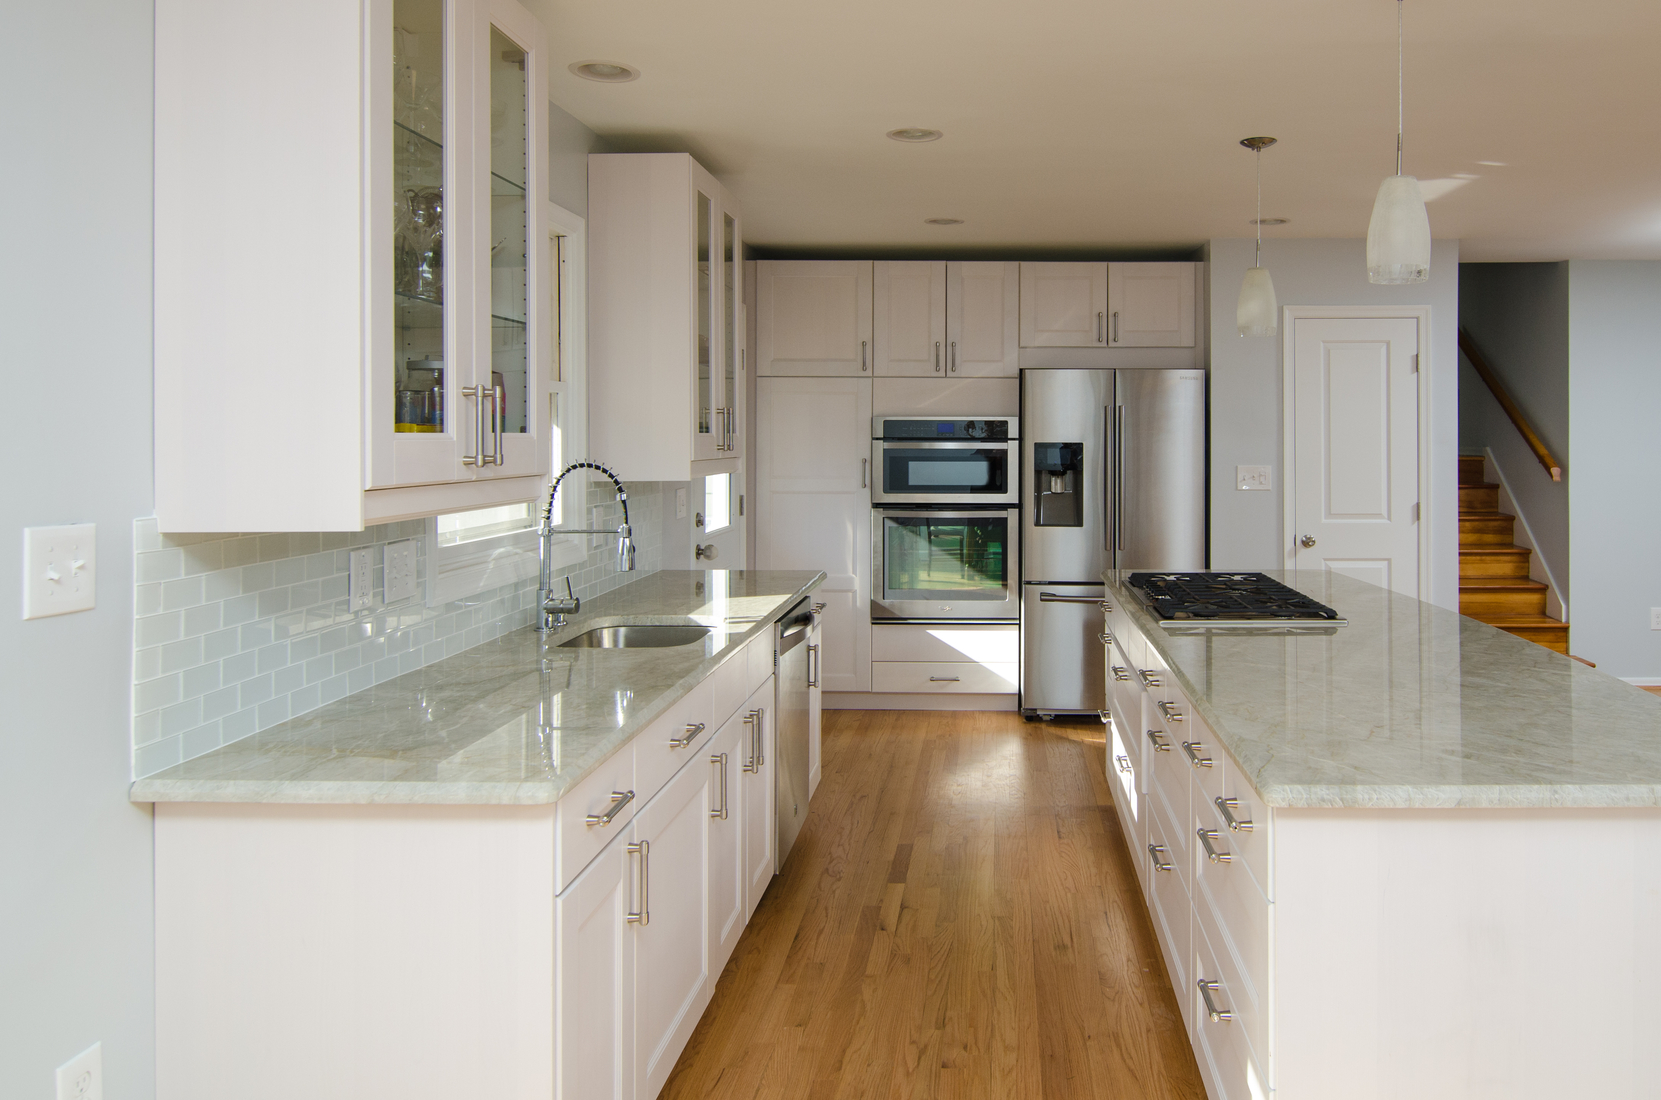 8 Dreamy Kitchens With White Quartzite Counters